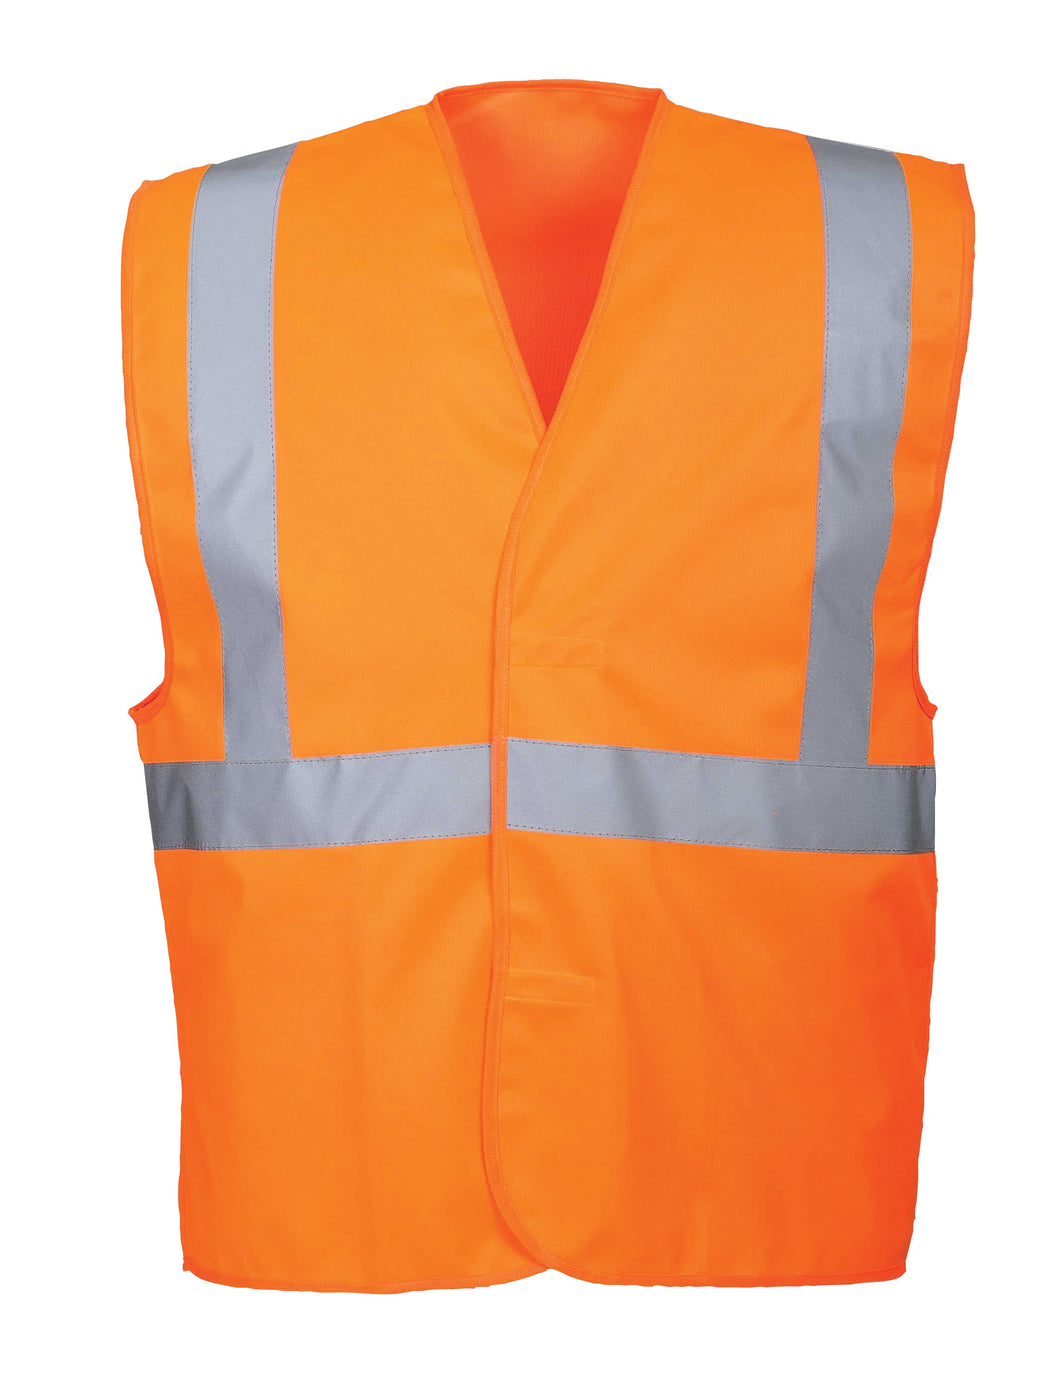 Class 2 Orange Safety Vest - Safety Vest Warehouse